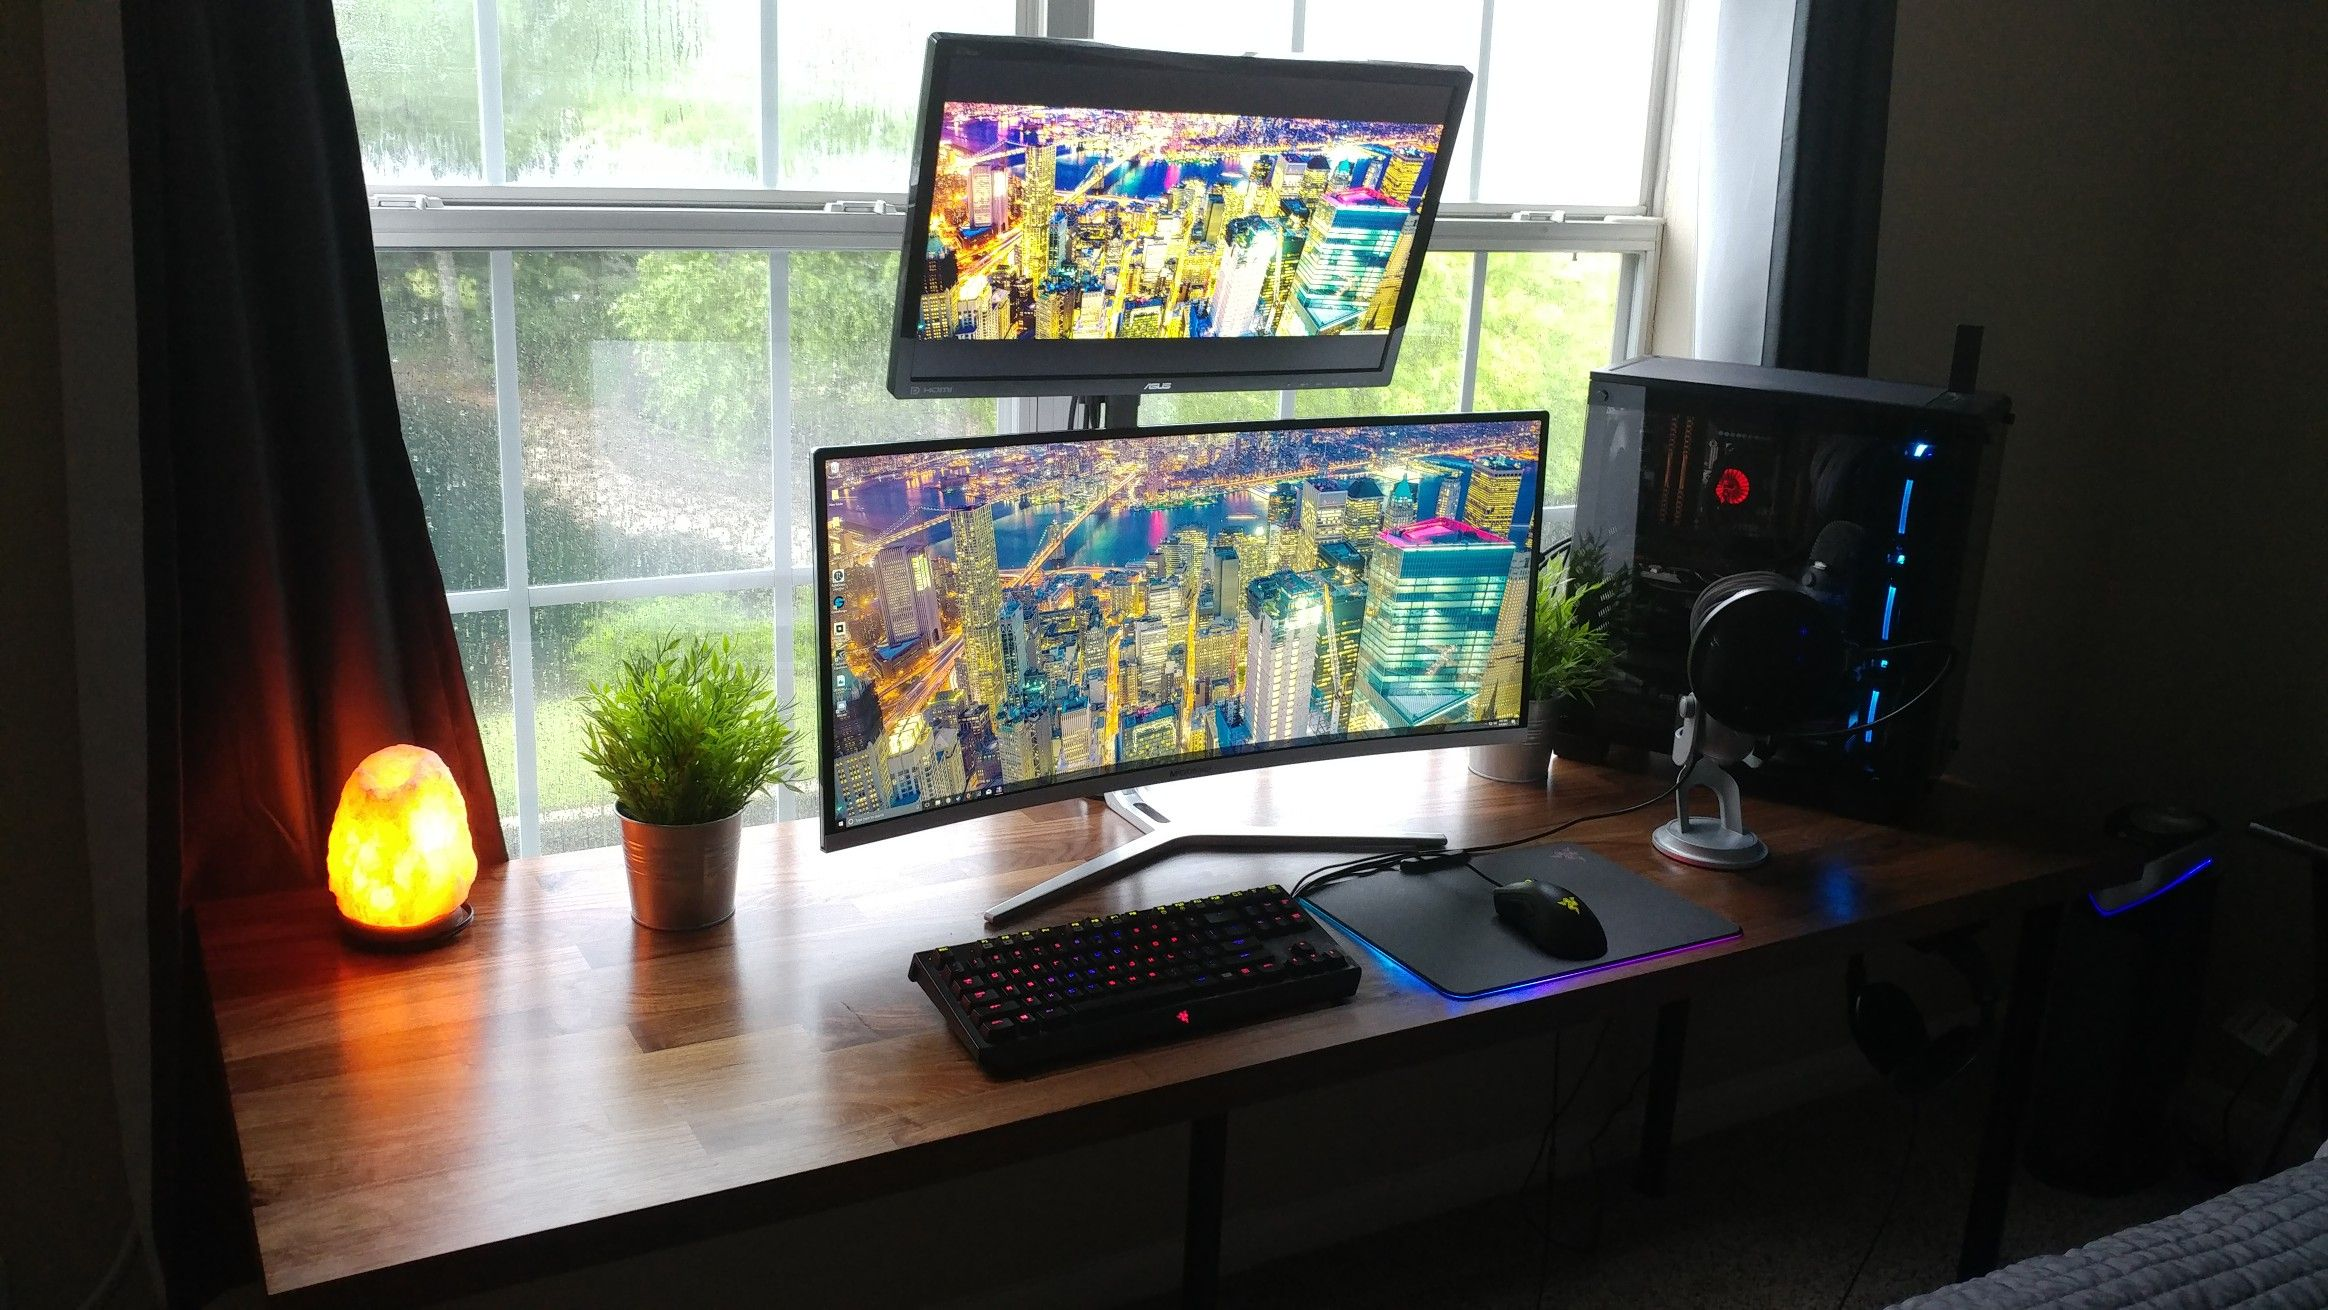 Pc Gaming Streaming Setup Ikea Countertop Used As A Tabletop